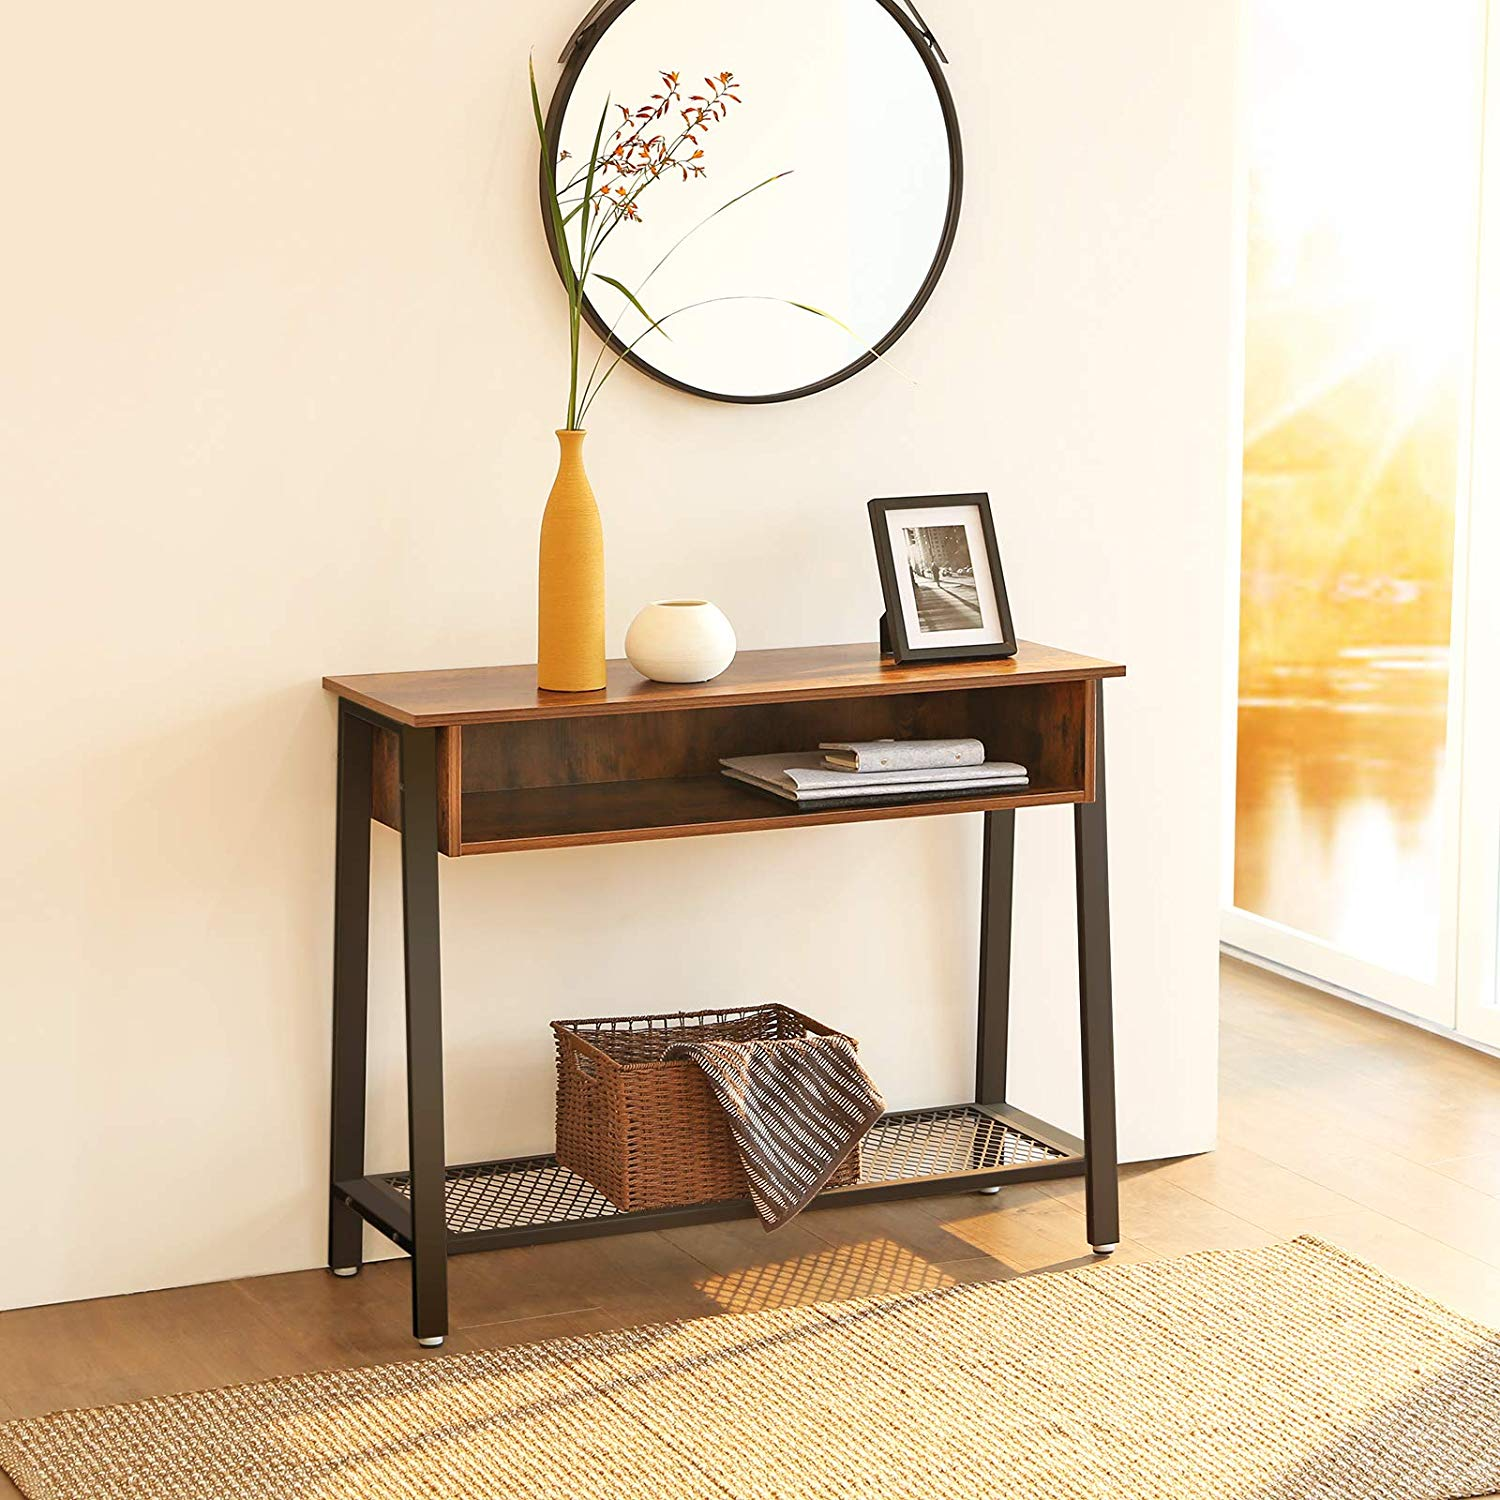 Shop hawkinswoodshop.com for discounted solid wood & metal modern, traditional, contemporary, custom & farmhouse furniture including our Industrial Vintage Sofa Console Table Free Shipping.  Ask about our free delivery & assembly collections today!